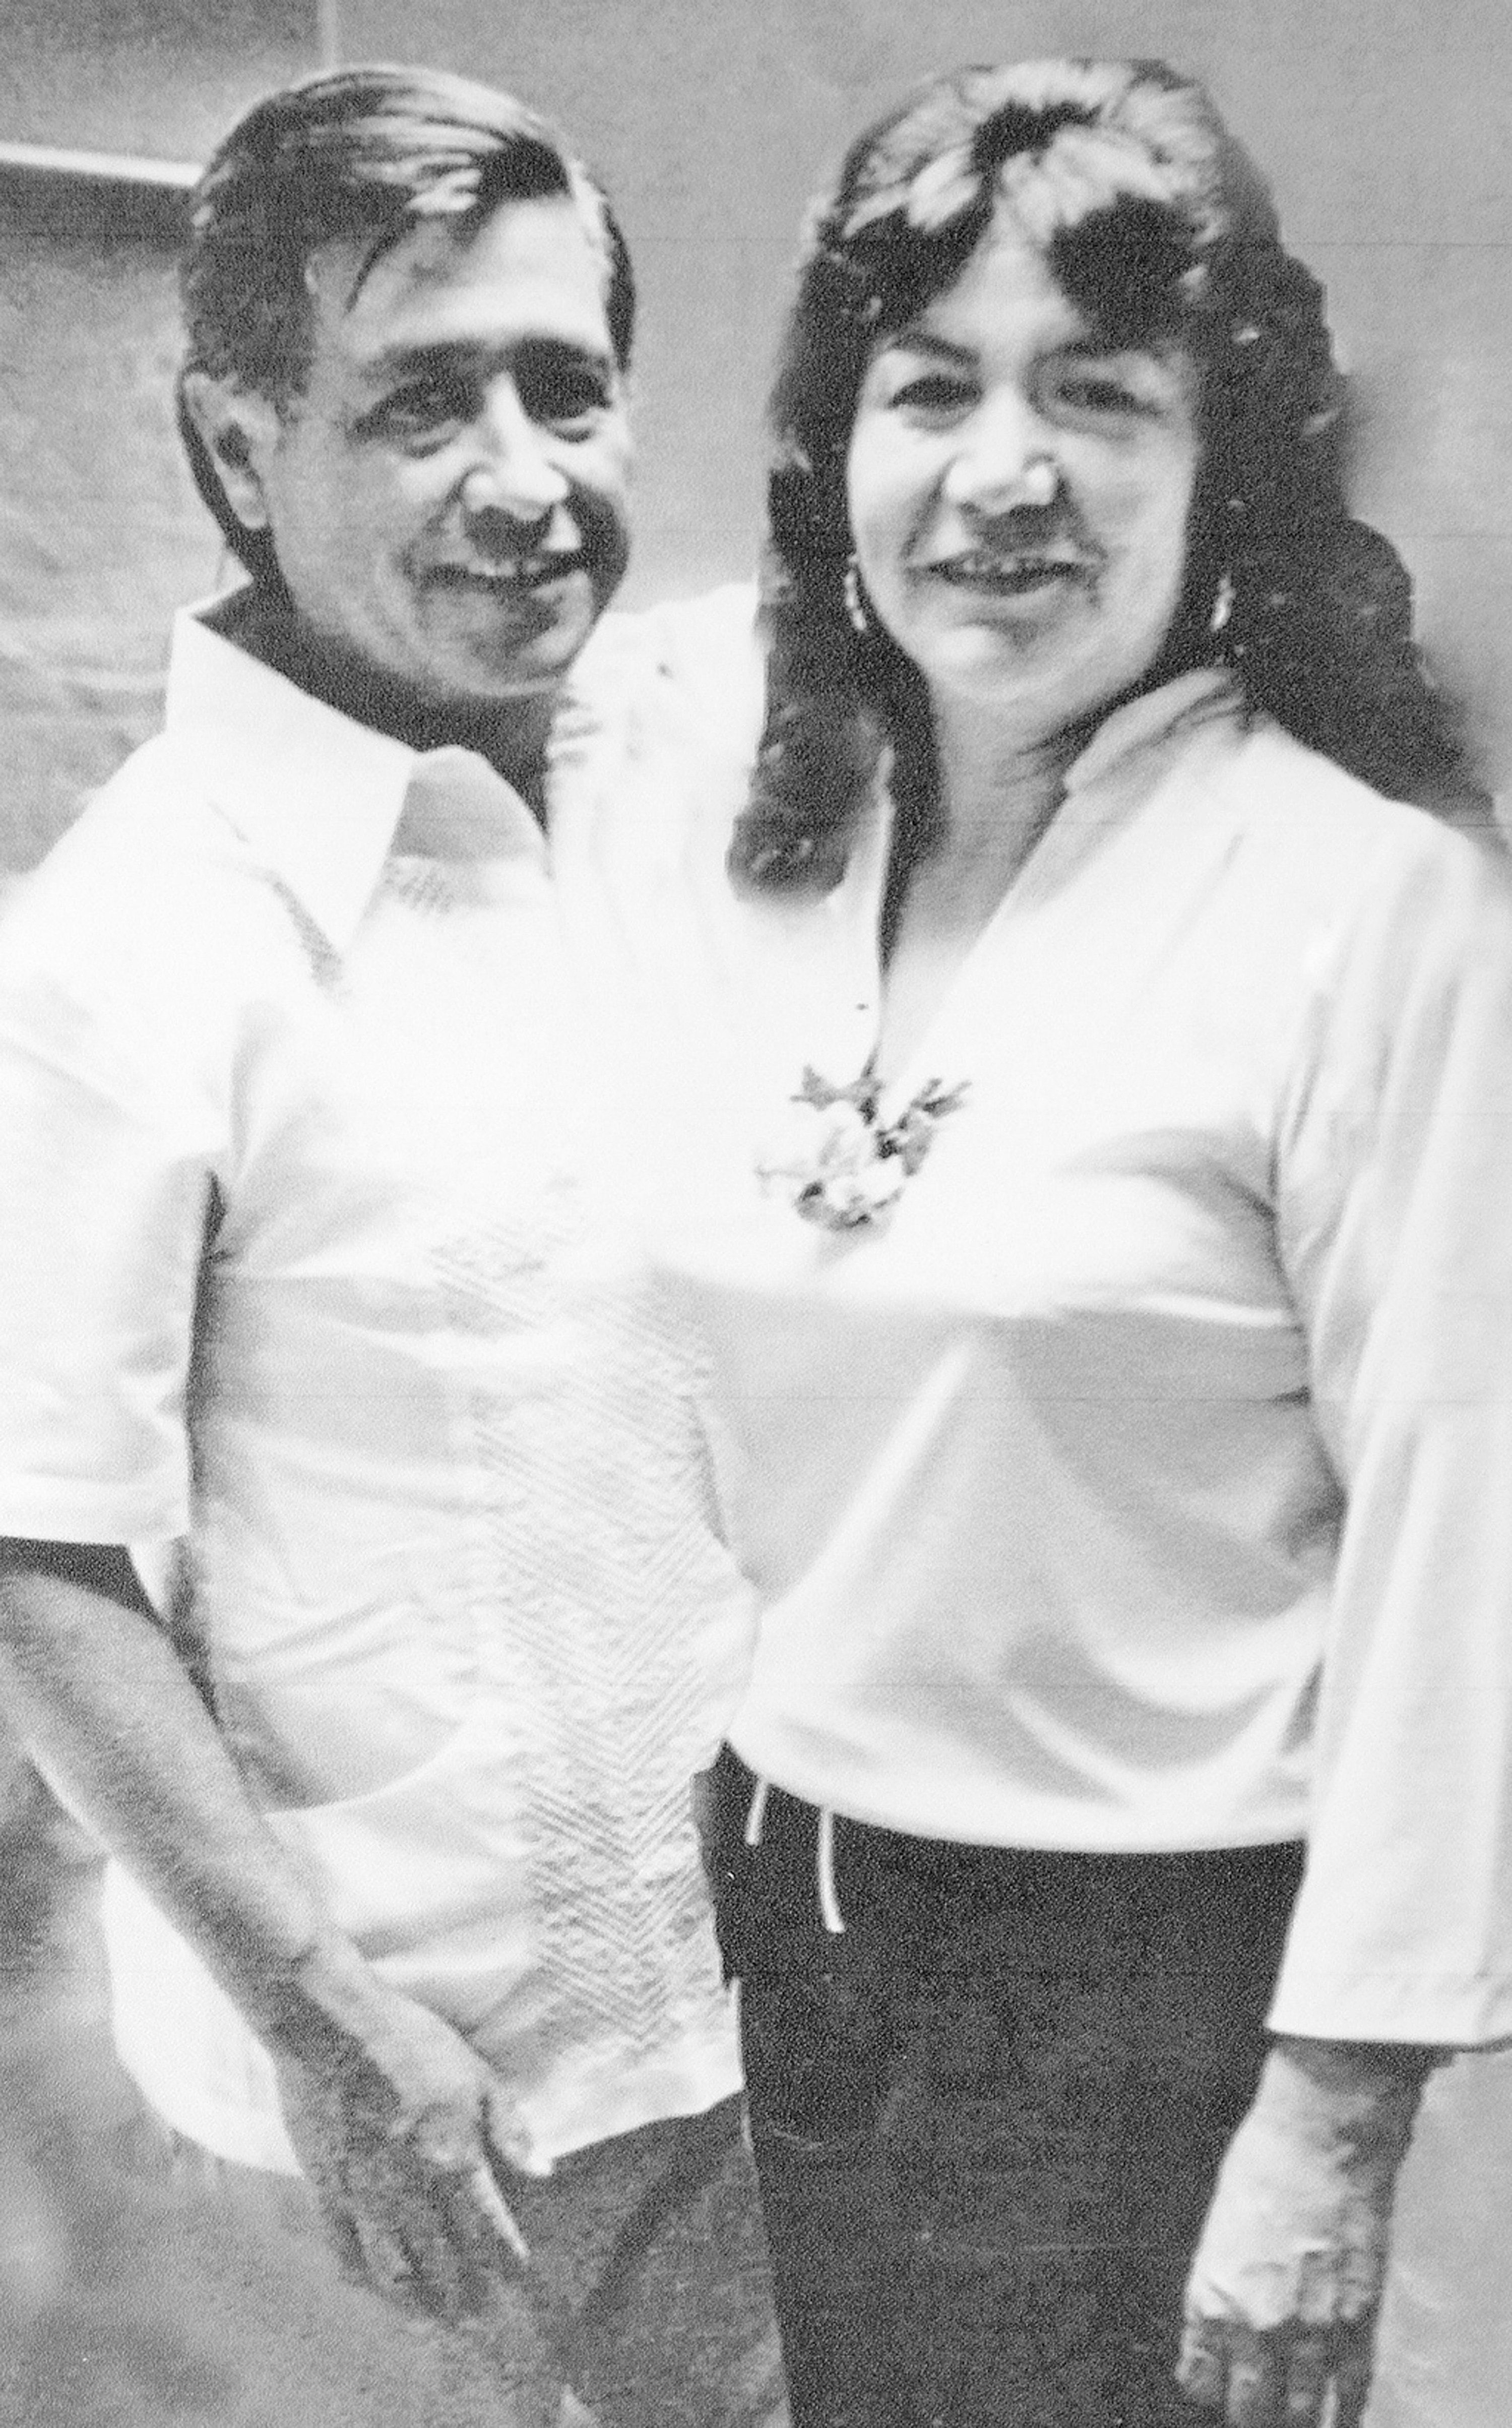 Portrait of United Farm Workers (UFW) co-founder Cesar Chavez (1927 - 1993) and  his wife Helen, California, ca.1970s. (Photo by Cathy Murphy/Getty Images)